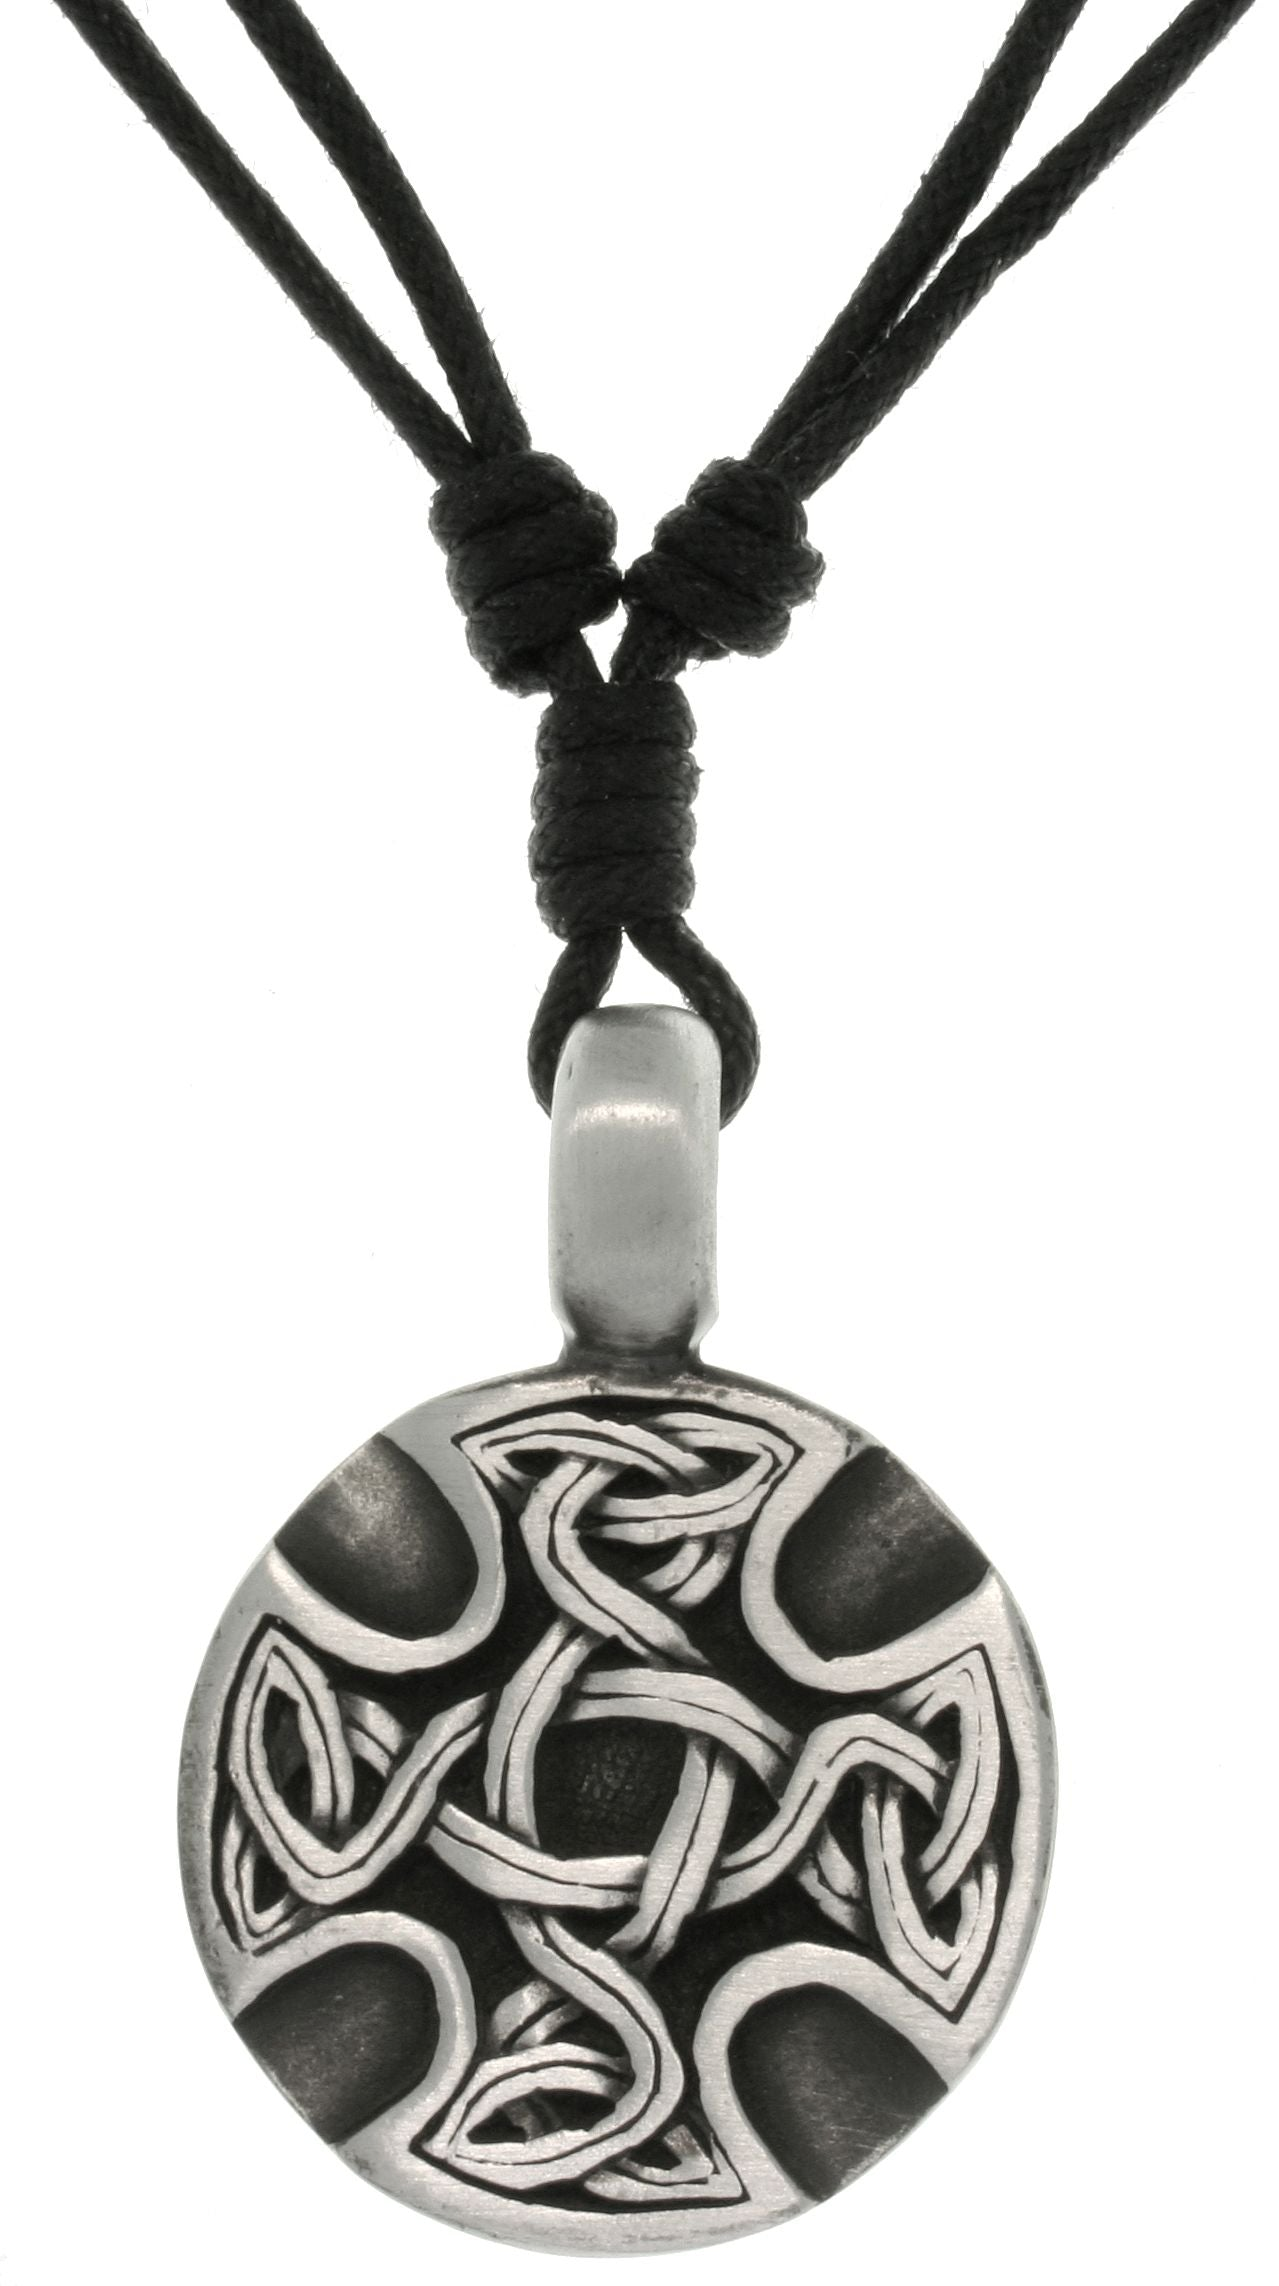 Jewelry Trends Pewter Celtic Medallion Unisex Pendant with Adjustable Black Cord Necklace